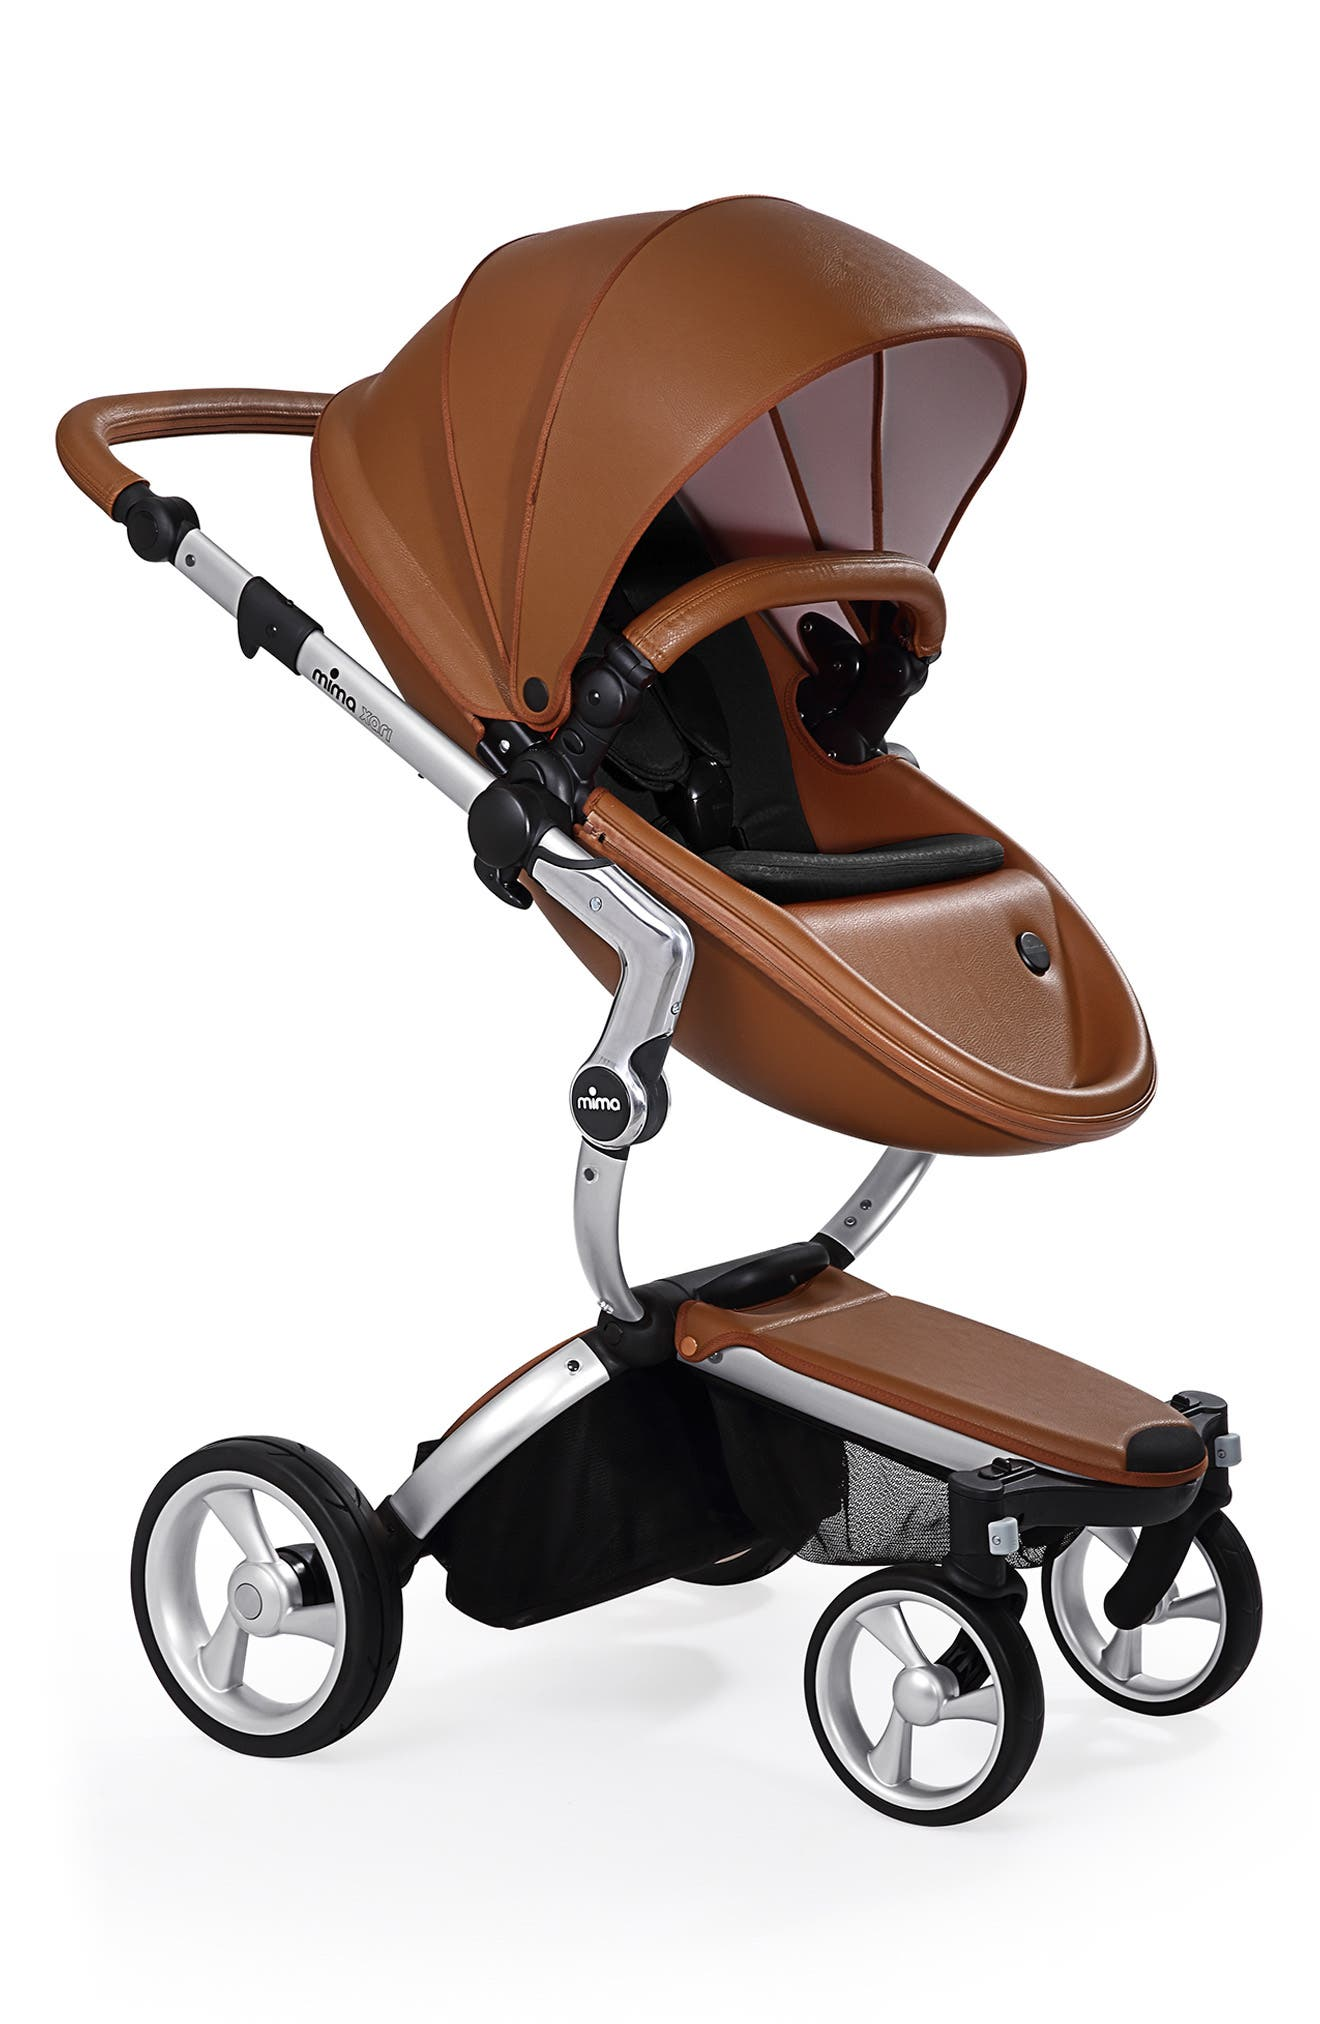 MIMA, Xari Aluminum Chassis Stroller with Reversible Reclining Seat & Carrycot, Main thumbnail 1, color, ALUM/ CAMEL/ BLACK